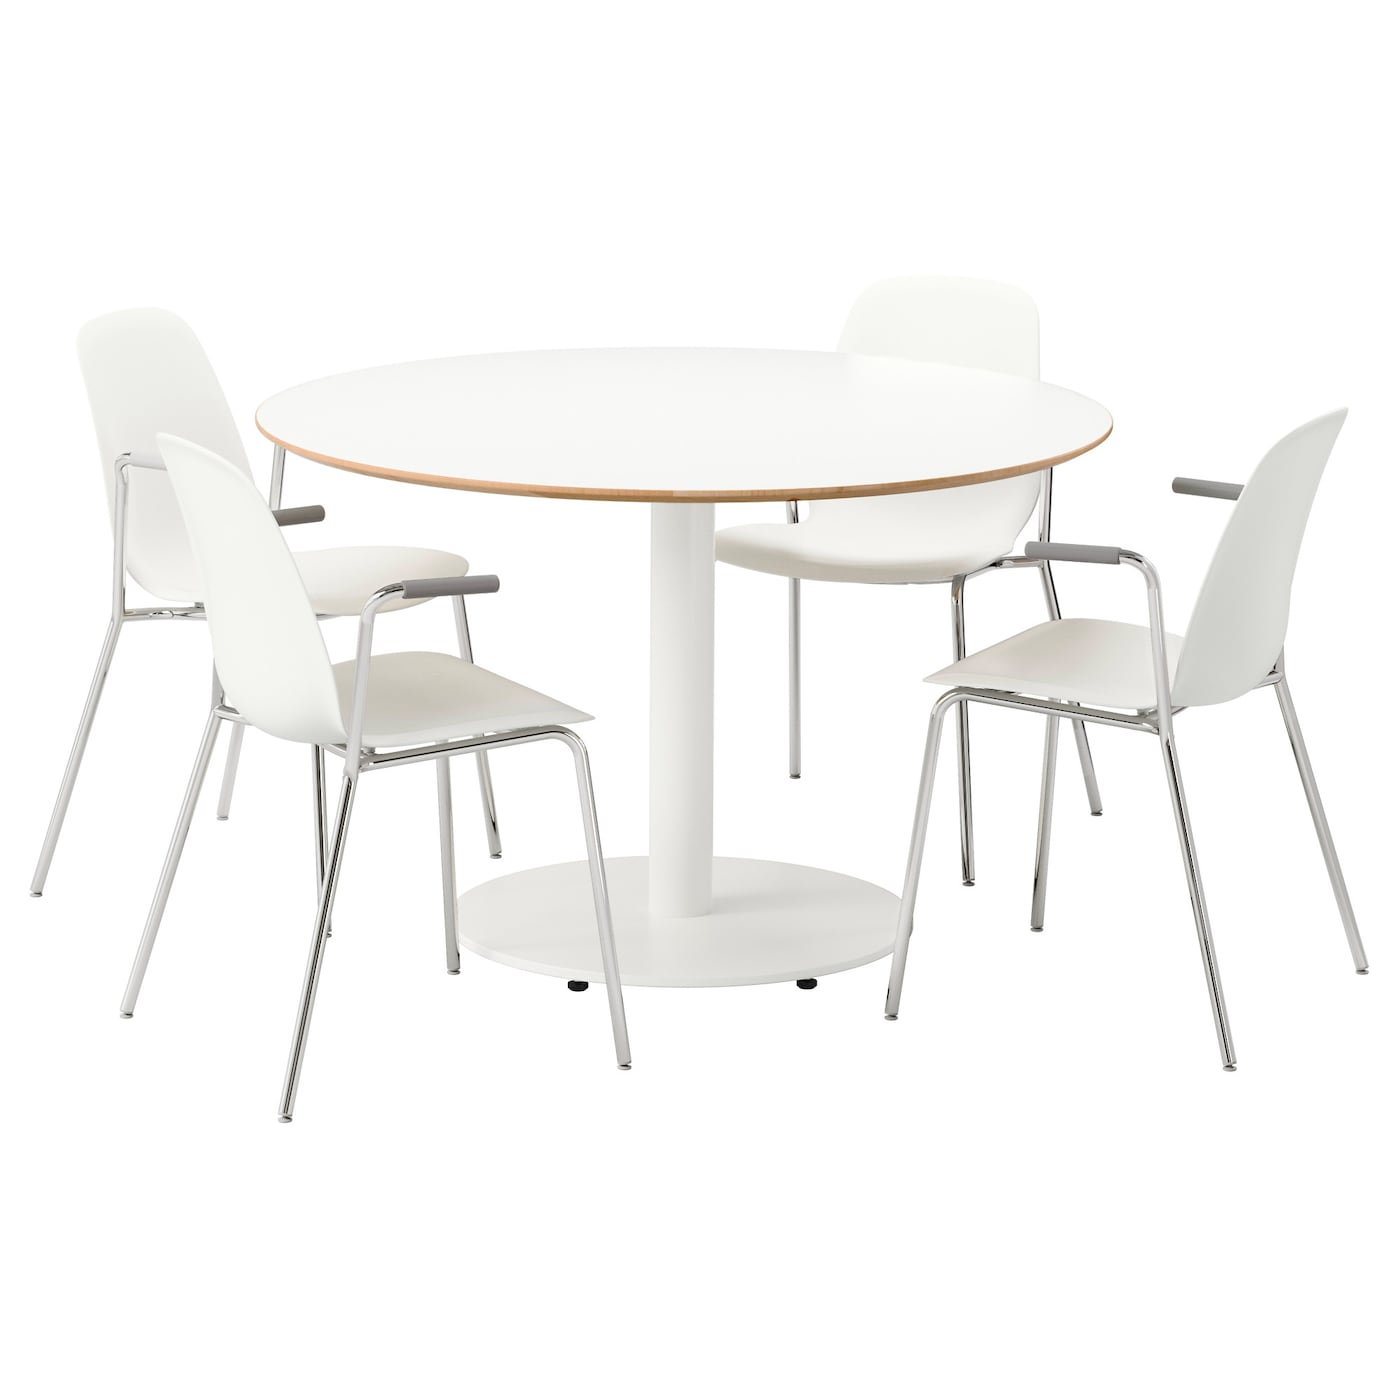 IKEA BILLSTA/LEIFARNE table and 4 chairs